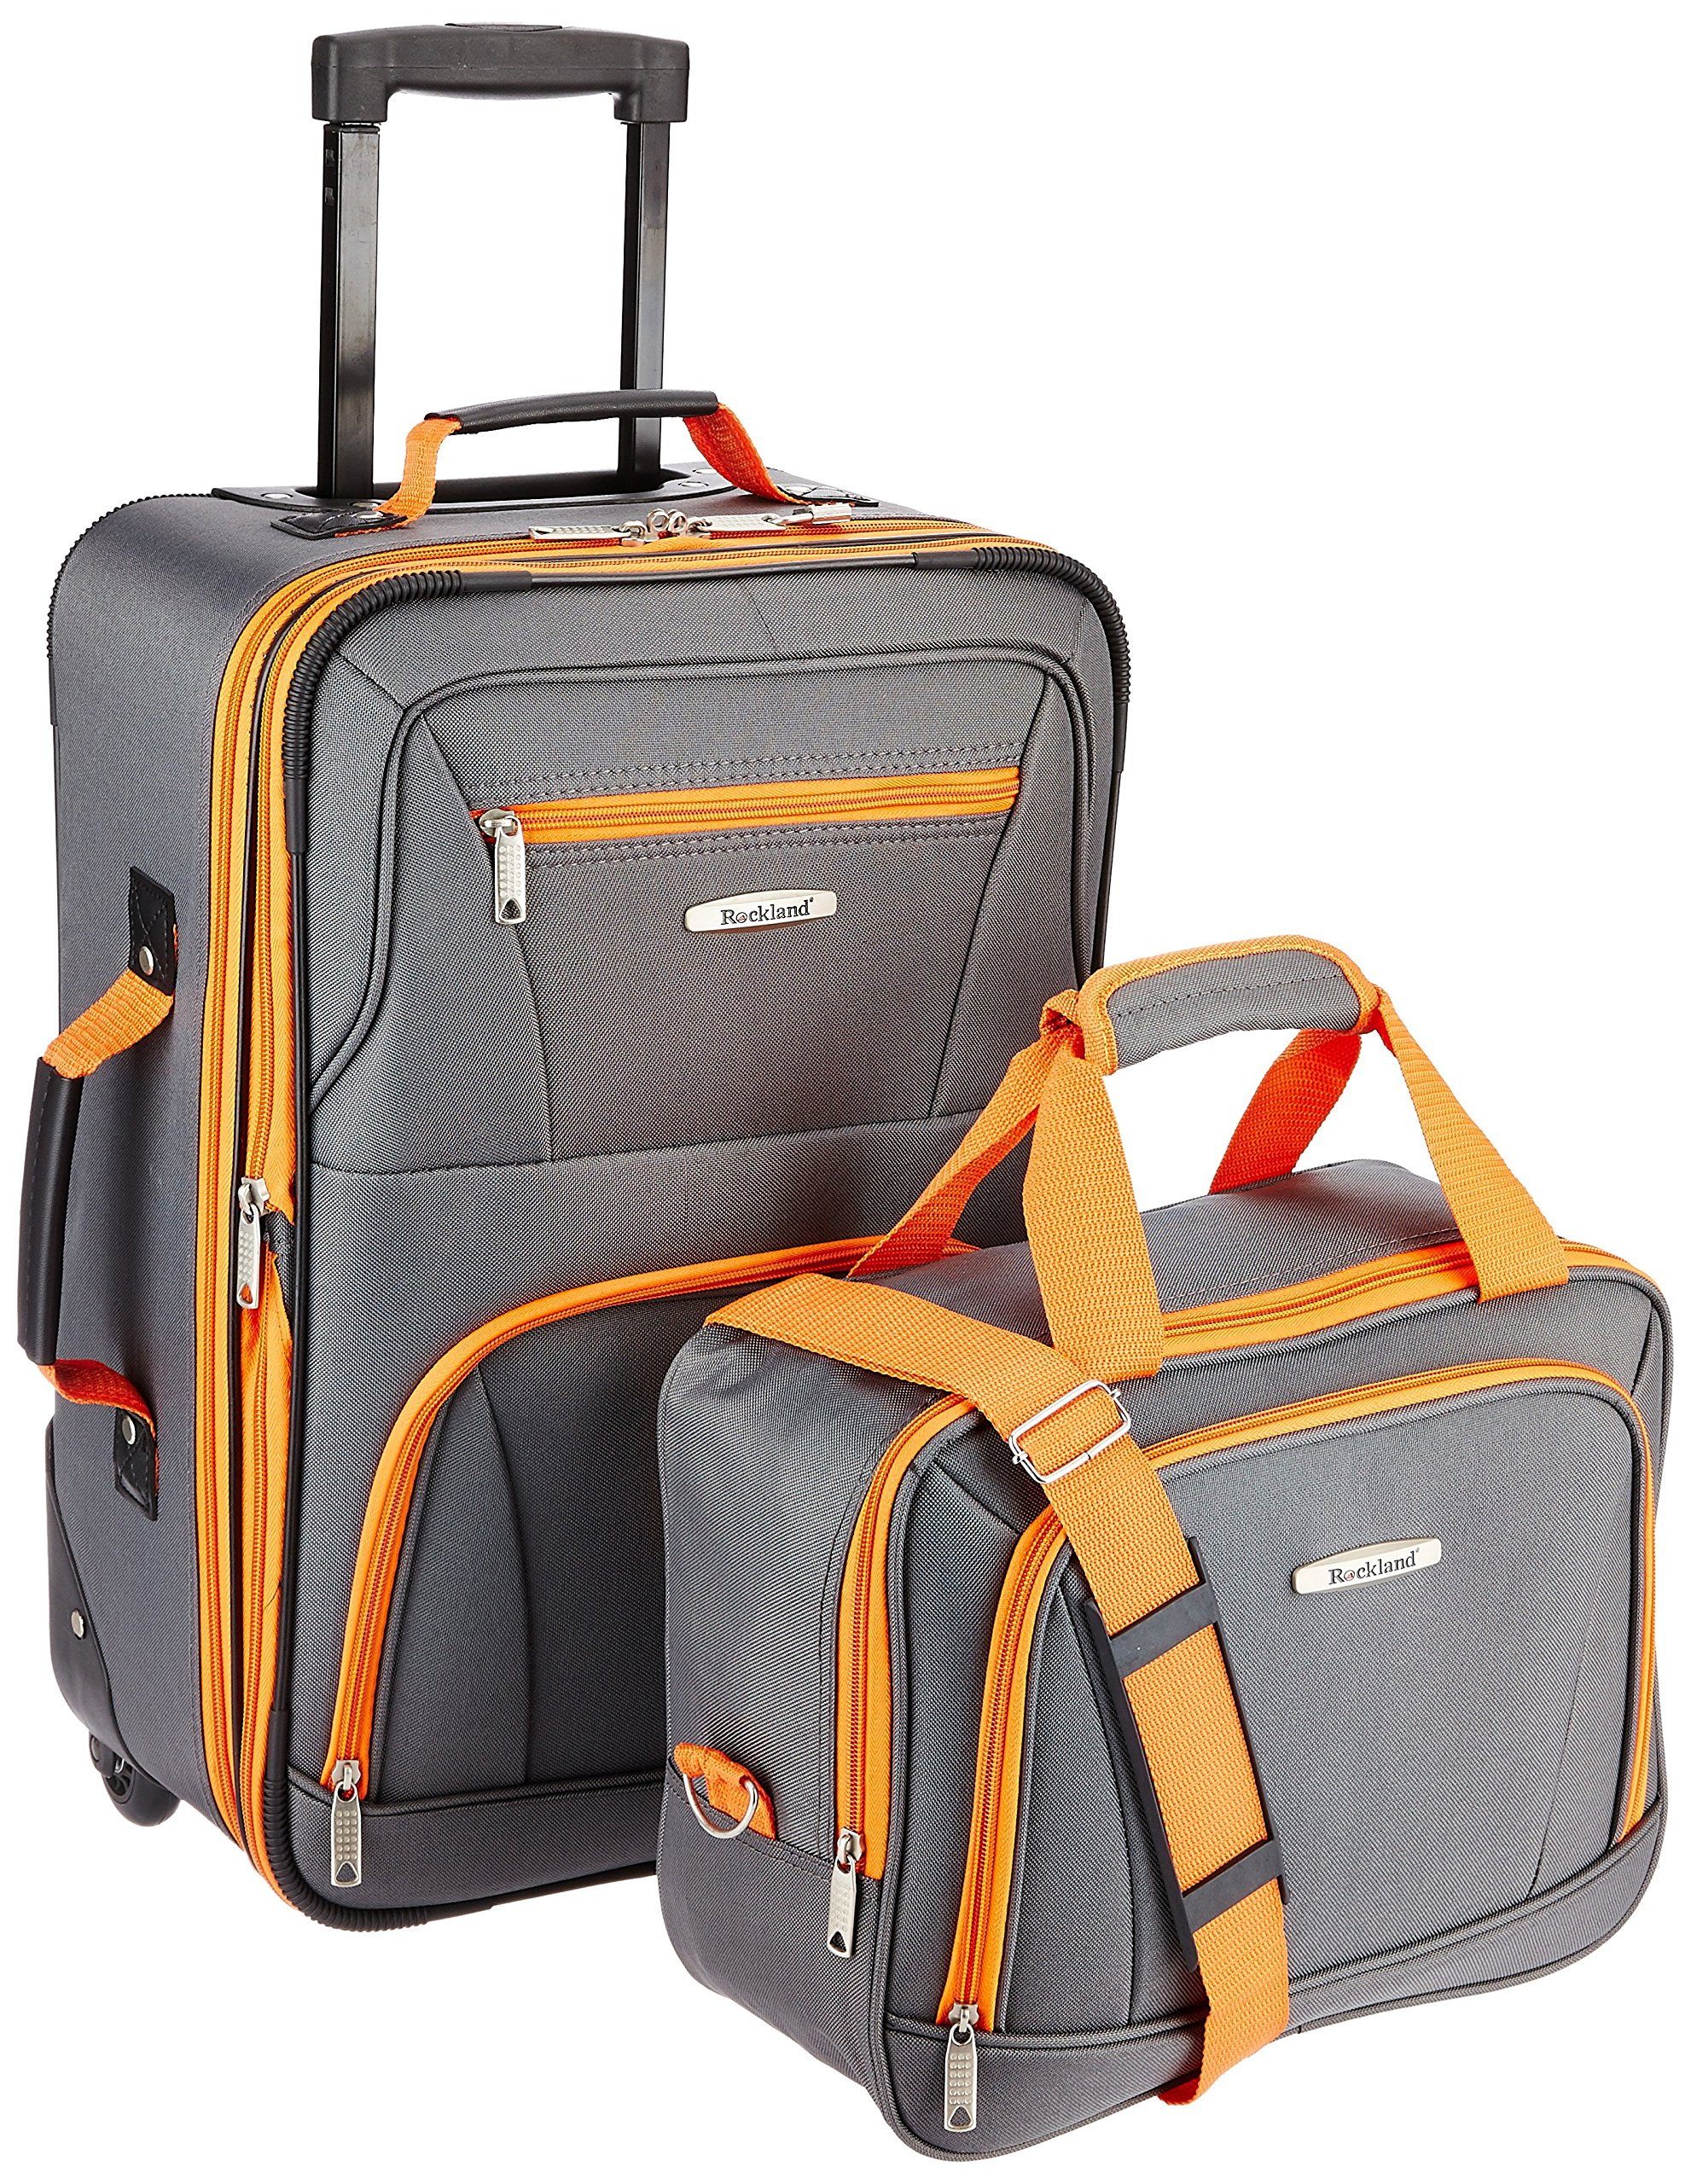 Rockland Luggage 2 Piece Set, Charcoal, One Size by Rockland